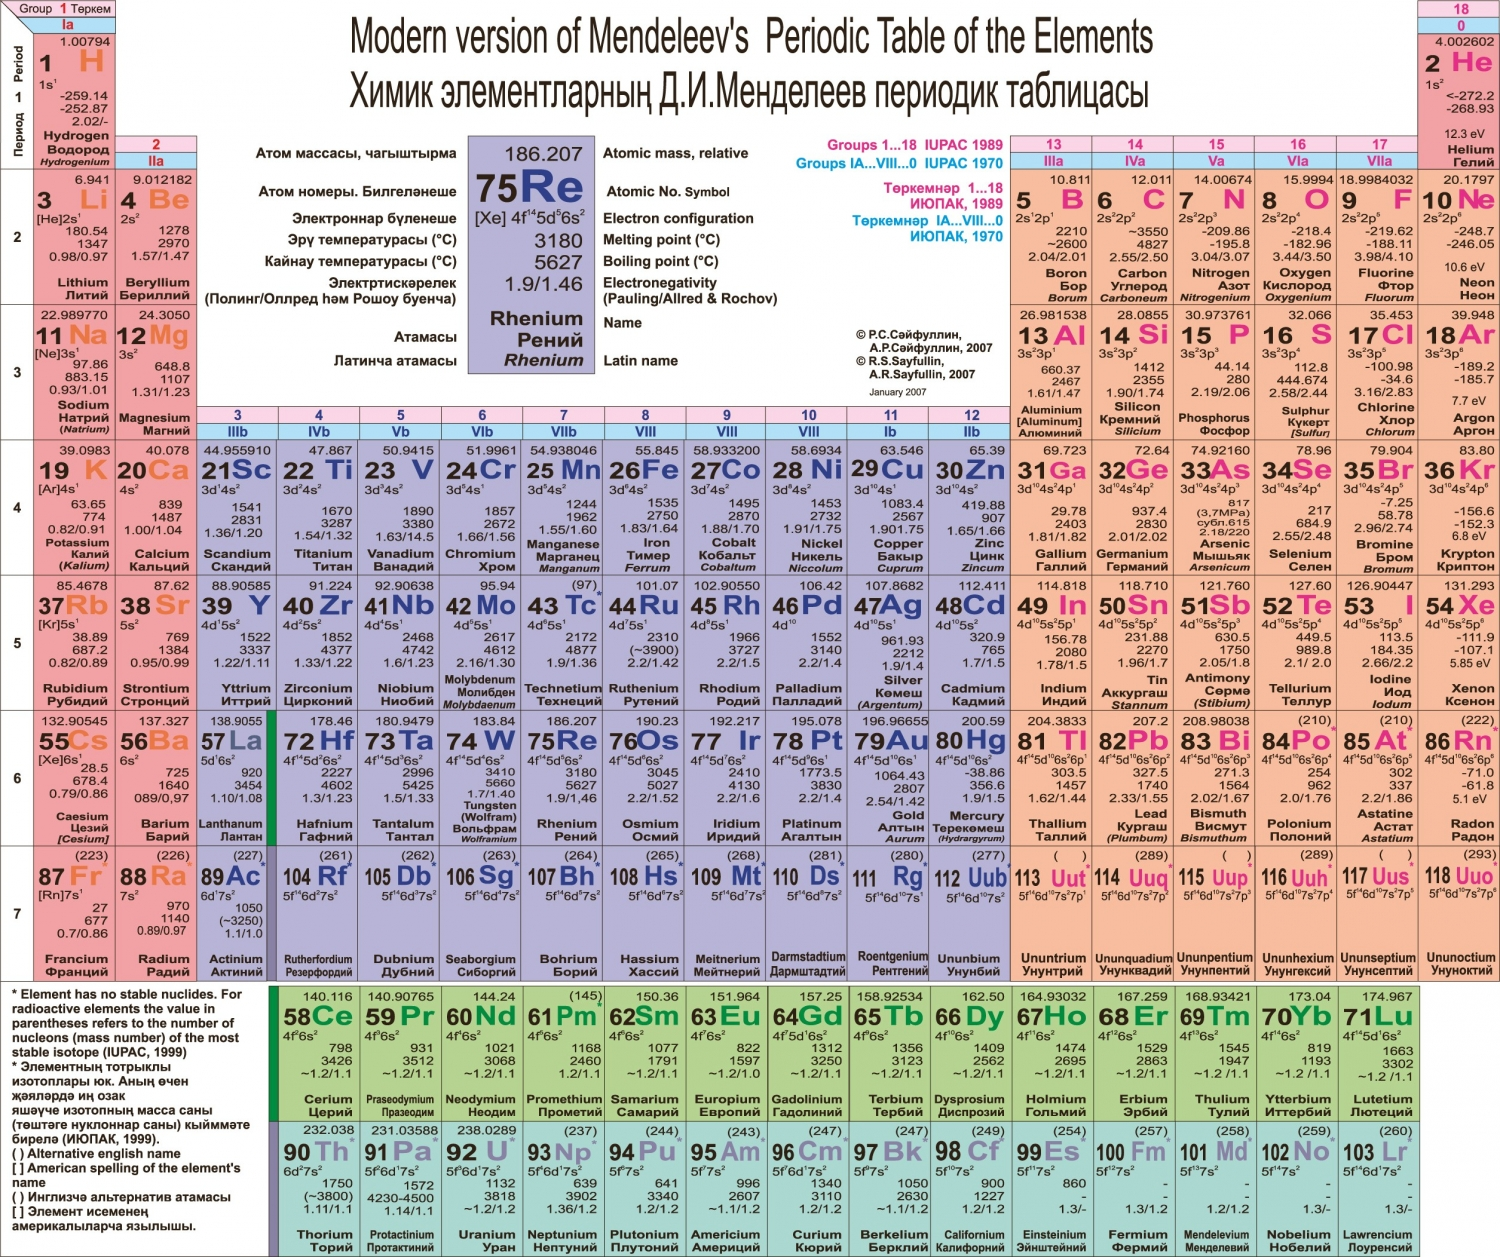 Azeri periodic table of the chemical elements pt in arabic scpript extinc old tatar tatar 1927 in latin script official 1927 19391999 2004 unofficial zamanlifinalifinalif2 periodic gamestrikefo Gallery